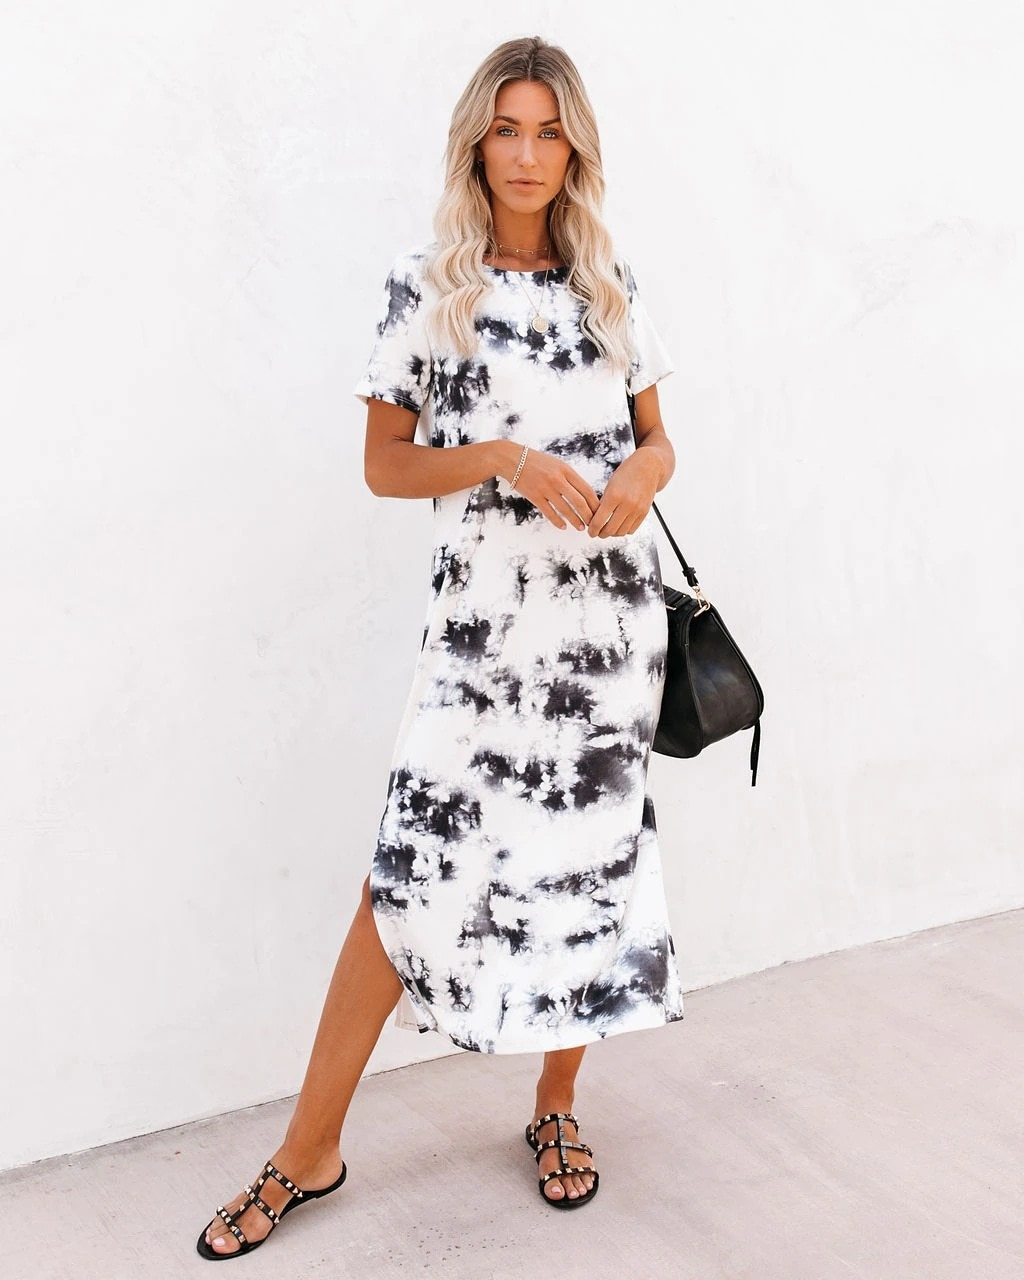 dresses mayoral 10686388 casual dress with short sleeves for girls Cotton Print Dress,Women's Casual Dress,Fashion Clothing for 2021,Long Skirt for Girls with Round Neck and Short Sleeves,Selling